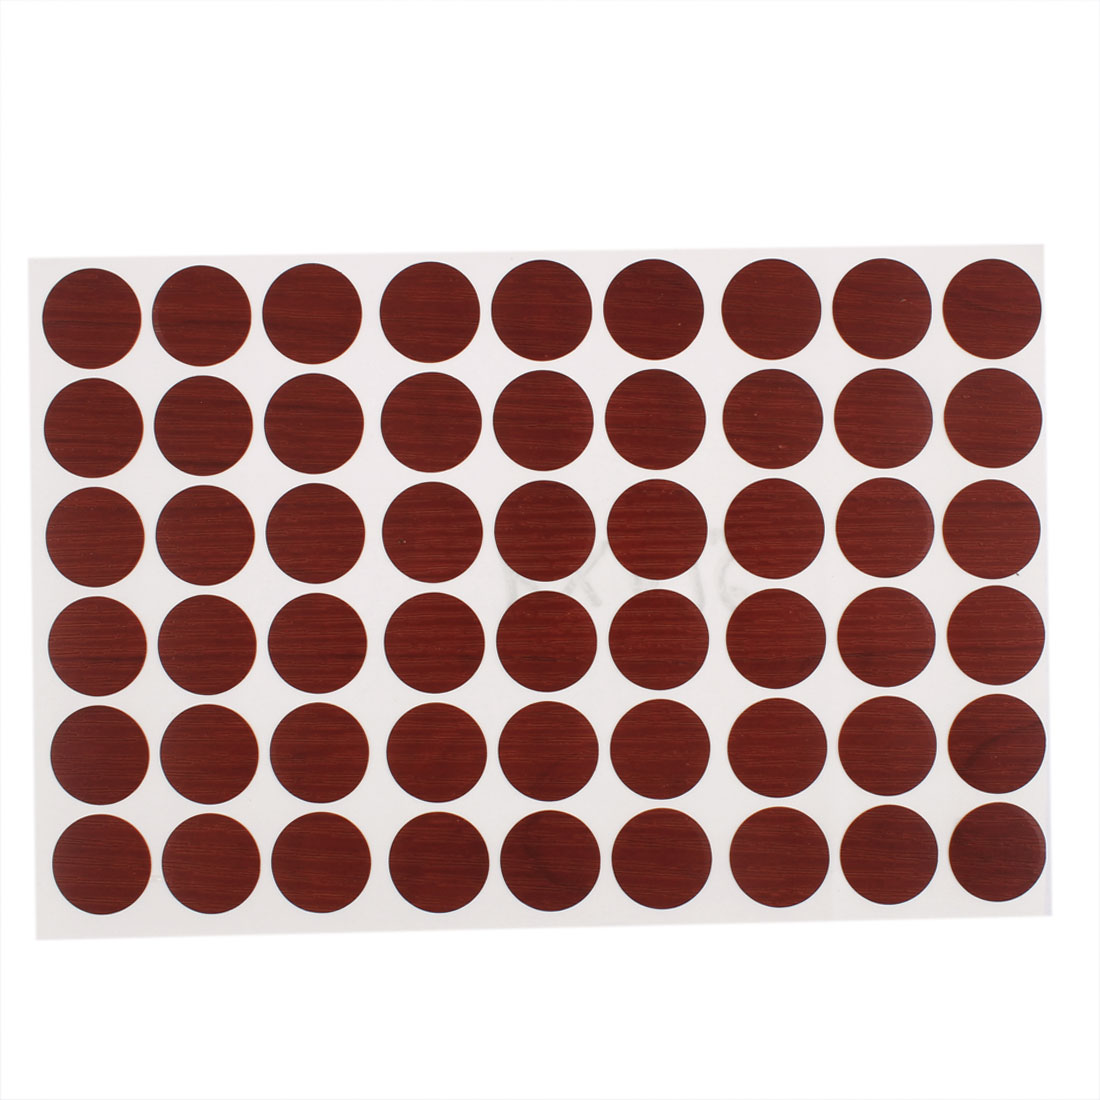 Plastic Self-adhesive Screw Hole Covers Caps Stickers Burgundy 54 in 1